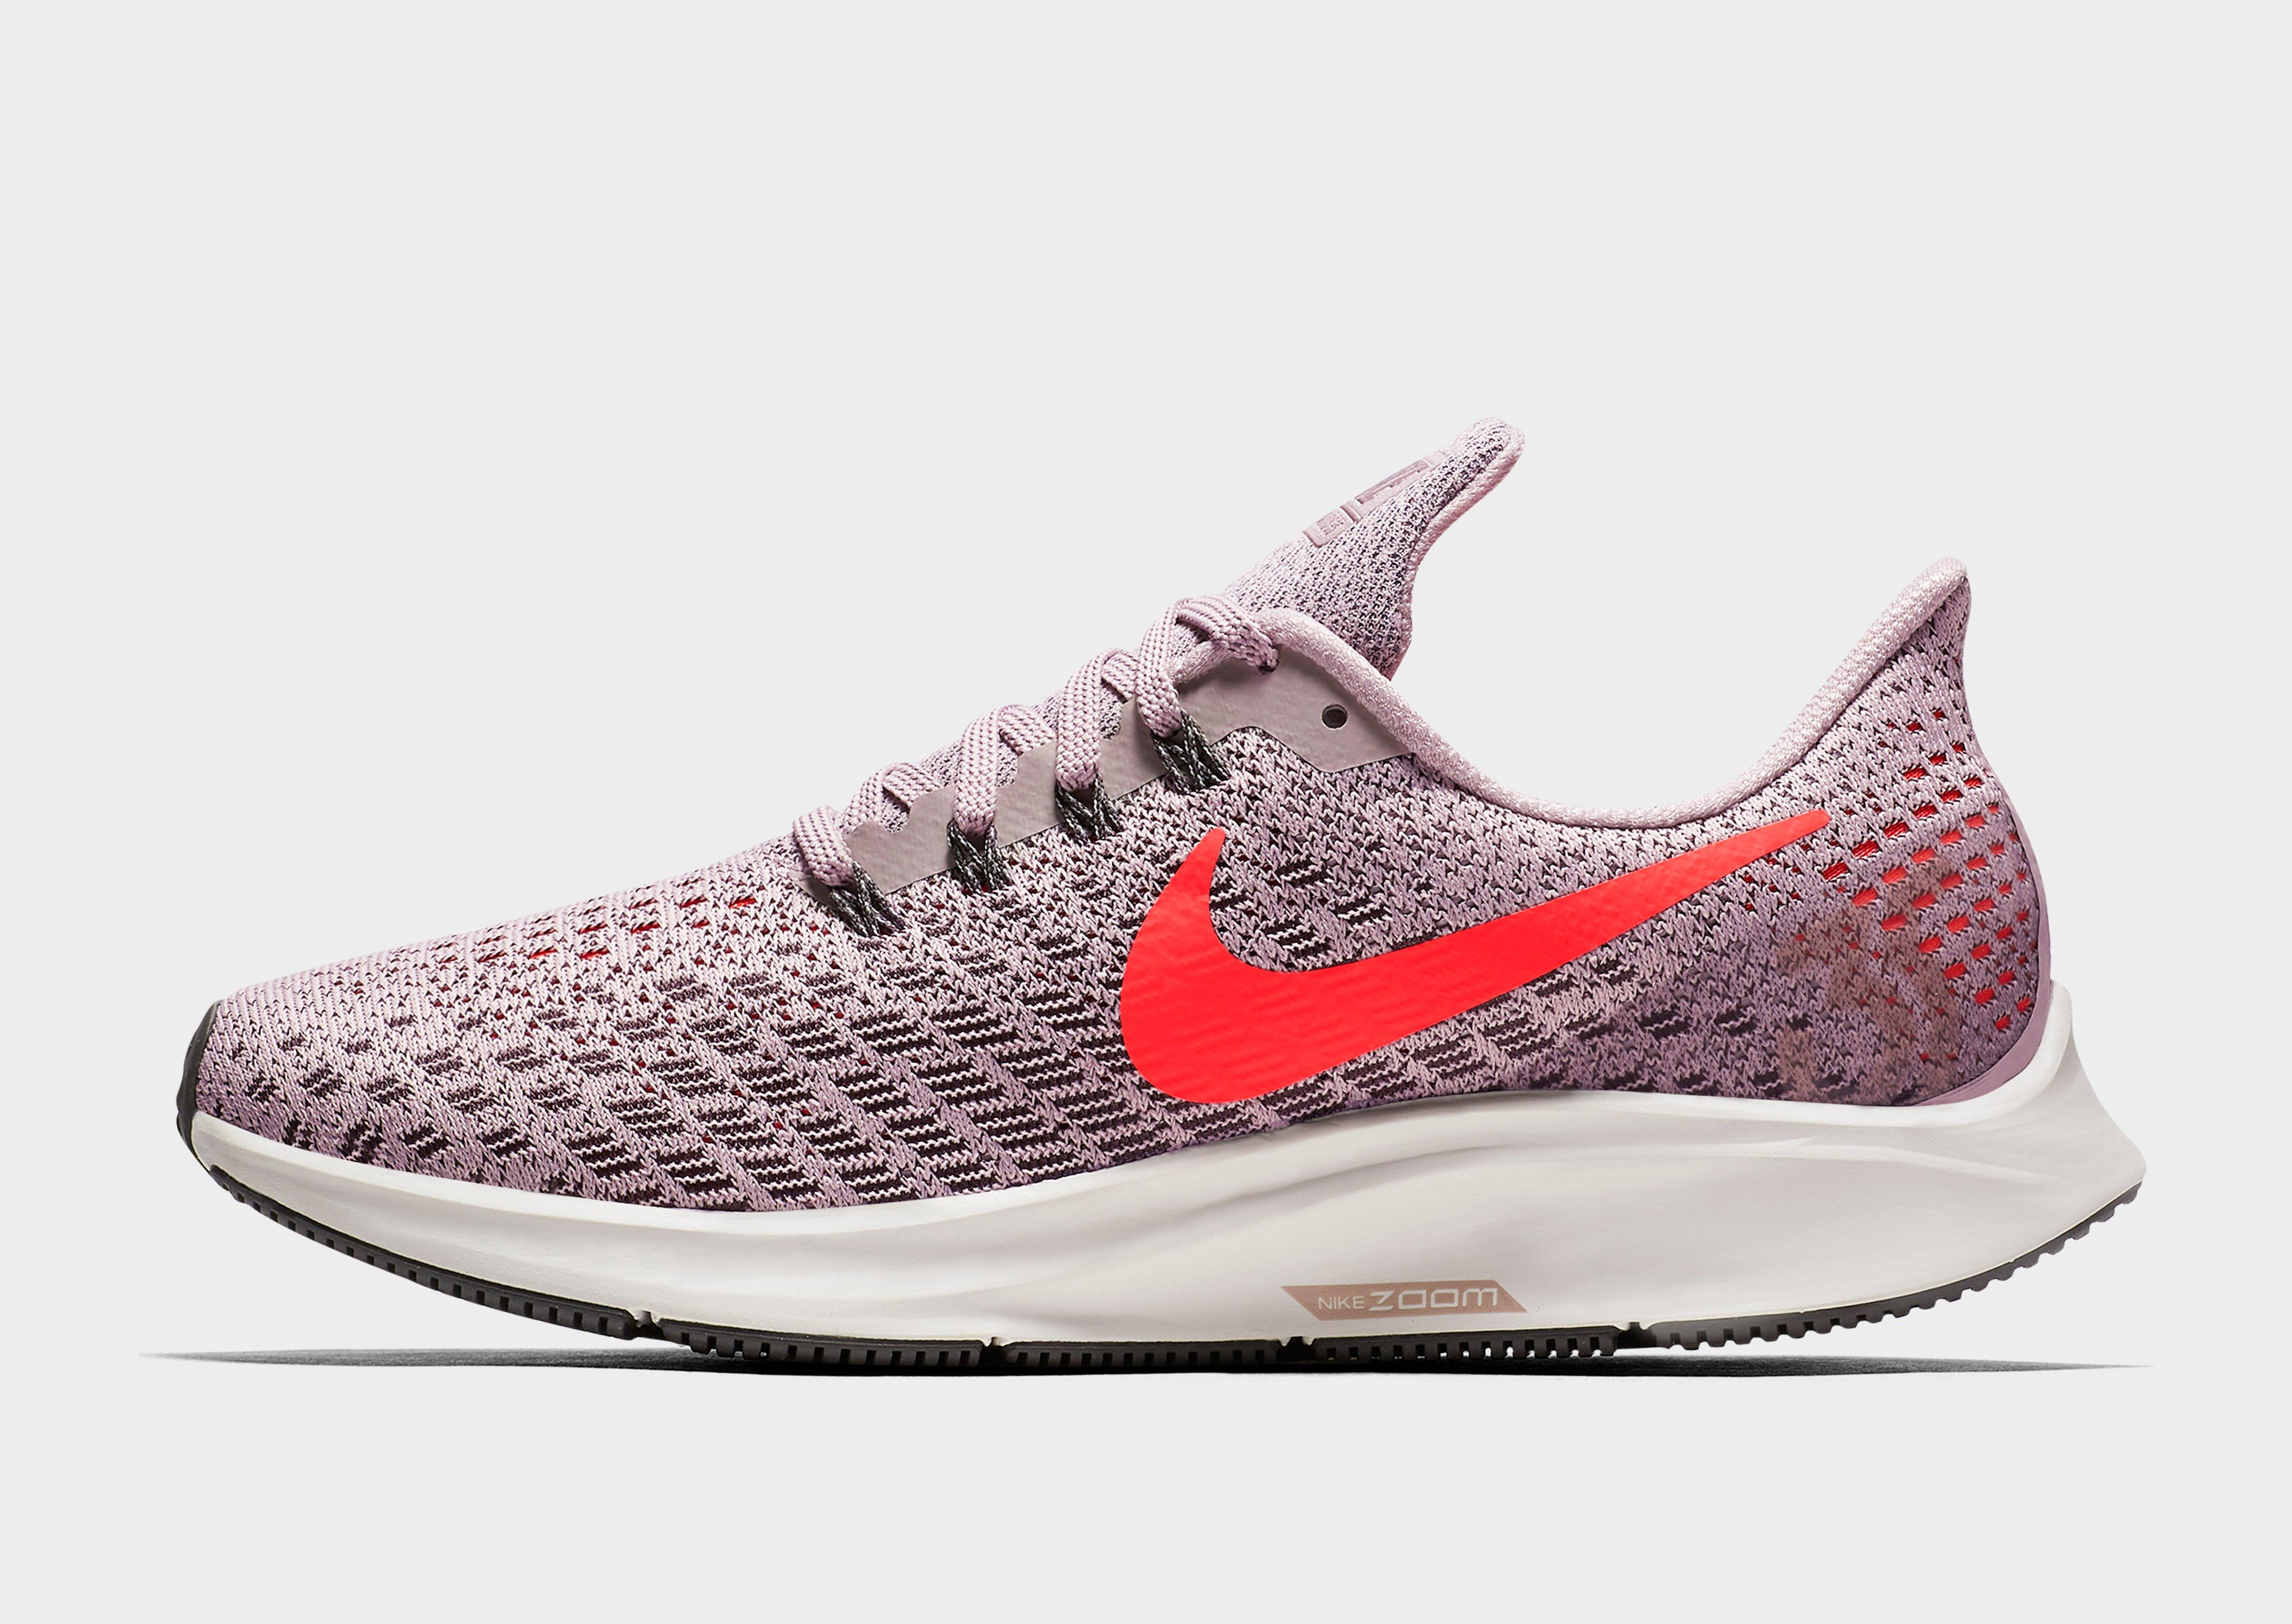 new concept 9578b 646f2 Lyst - Nike Air Zoom Pegasus 35 in Pink - Save 1.4492753623188435%  nike  free 3.0 women india. air max 90 jd sports ...